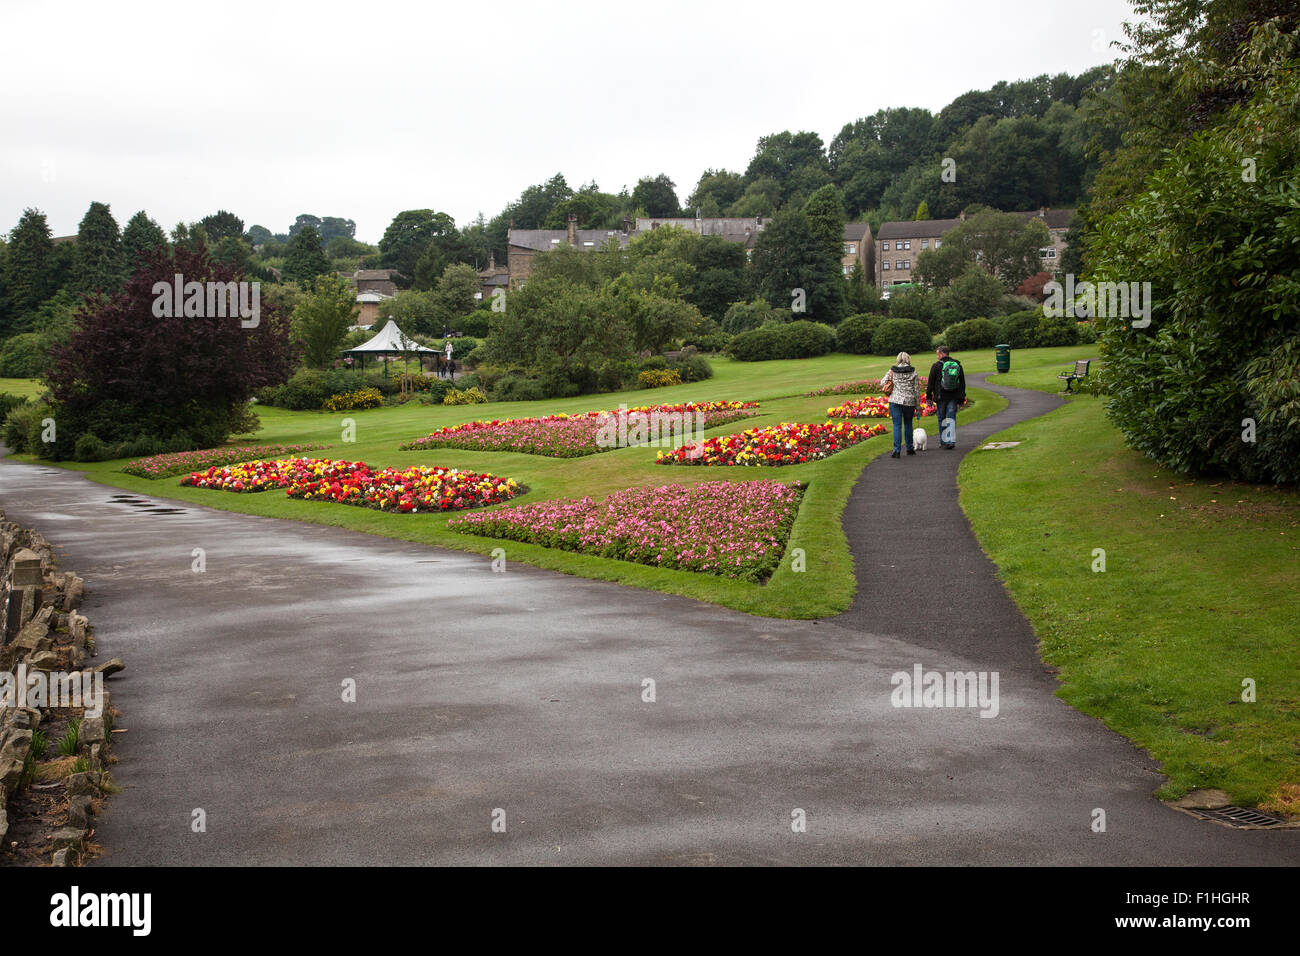 Late summer flowers on display in Haworth Central Park West Yorkshire a tourist attraction and area associated with - Stock Image